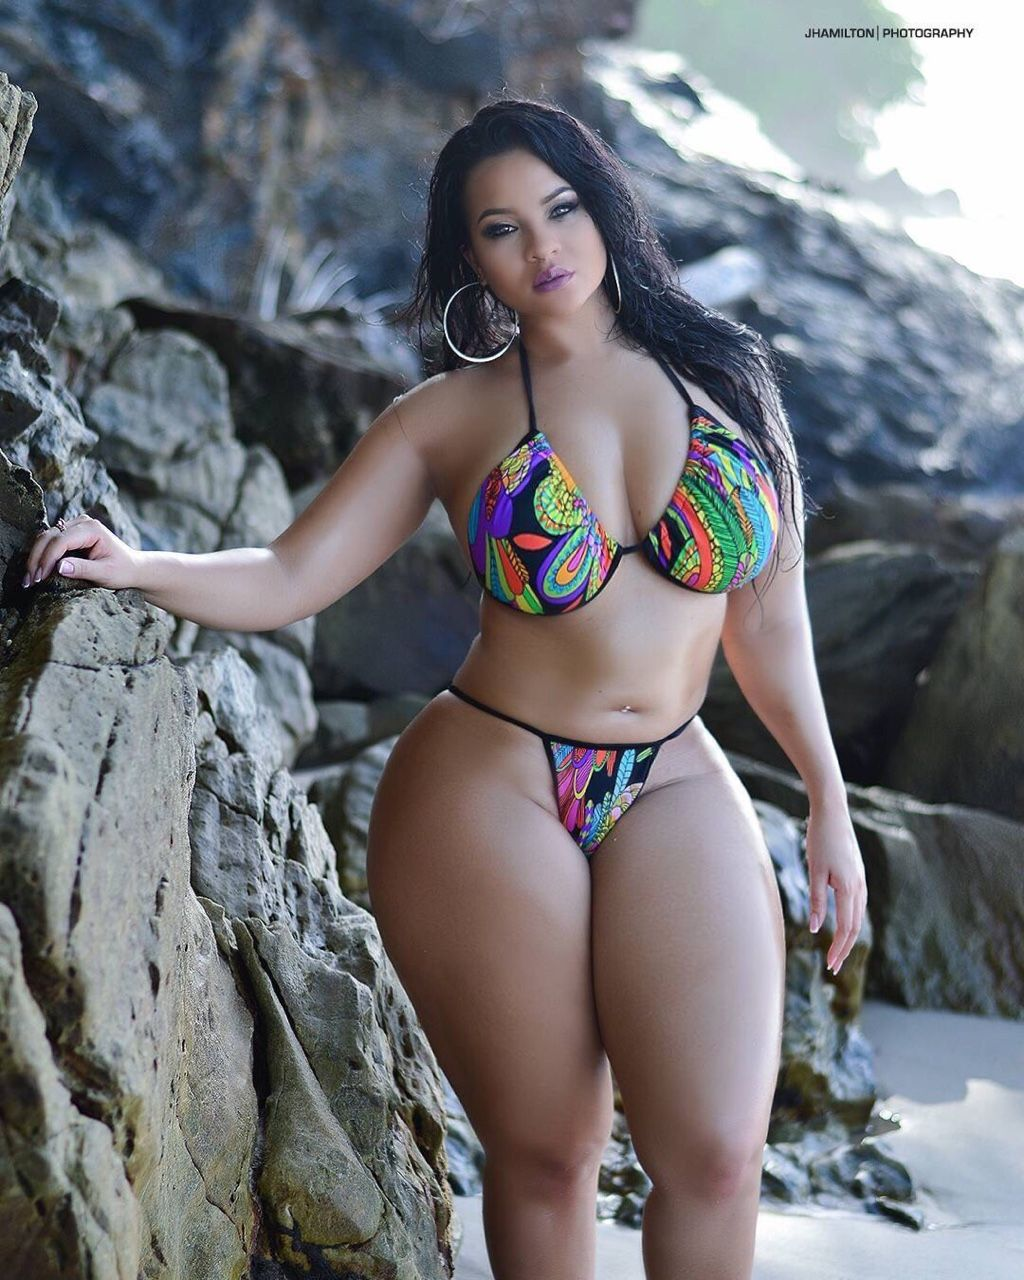 I Like My Women Bbw Curvy With Thick Thighs Hamilton Photography Full Figured